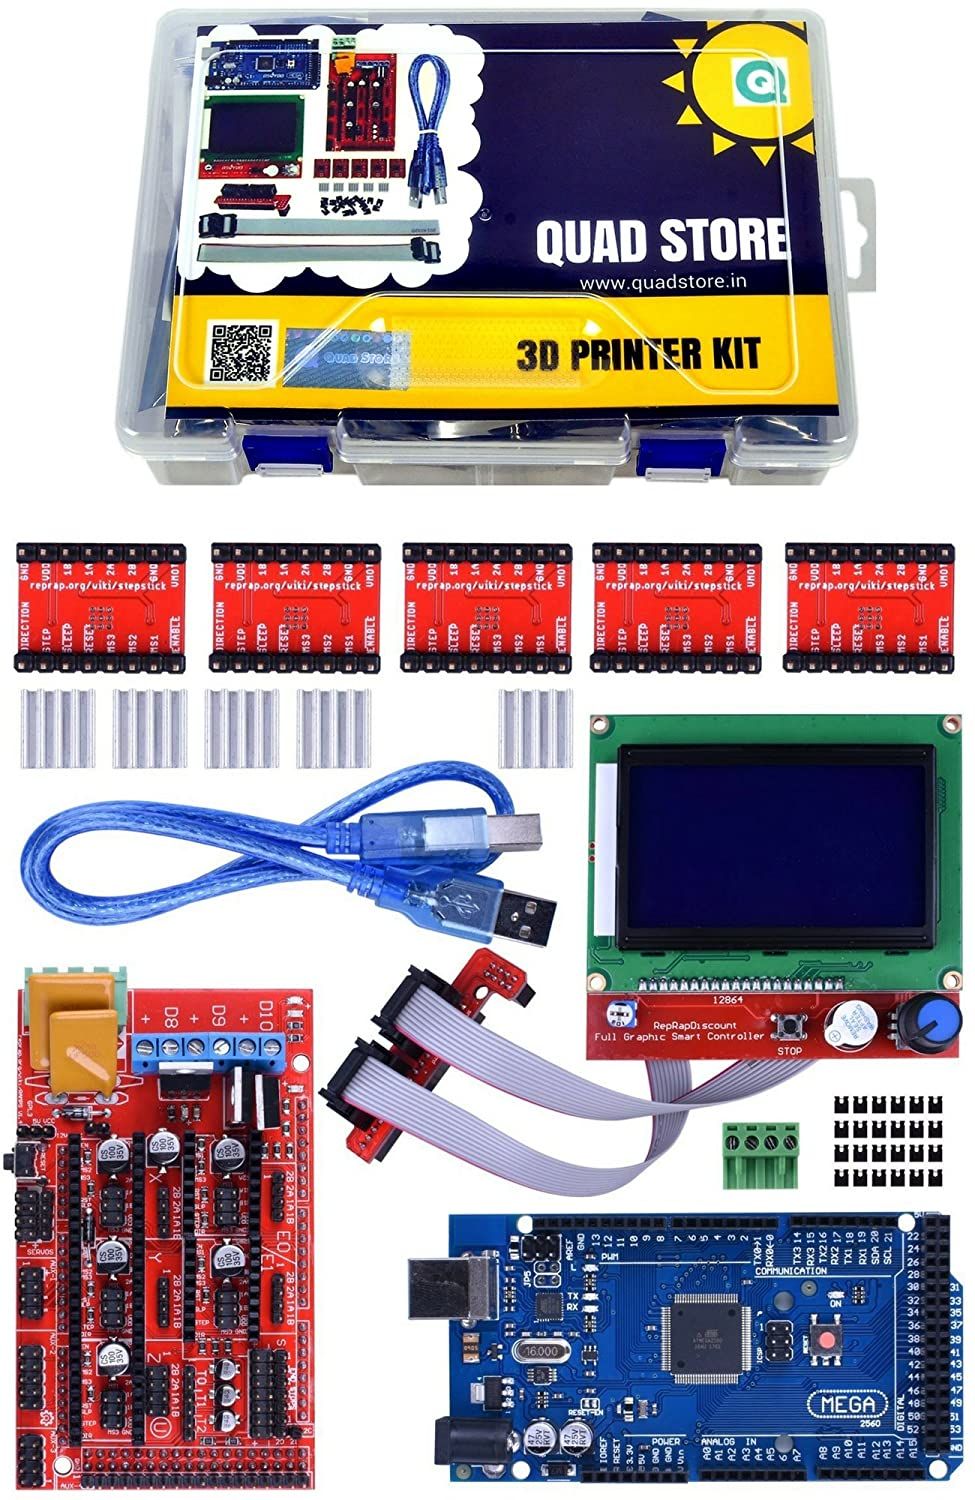 Quad Storetm 3d Printer Kit With Arduino Mega 2560 Ramps14 Diy Connections Of Ramps 1 4 Shield A4988 And 12864 Smart Lcd Industrial Scientific